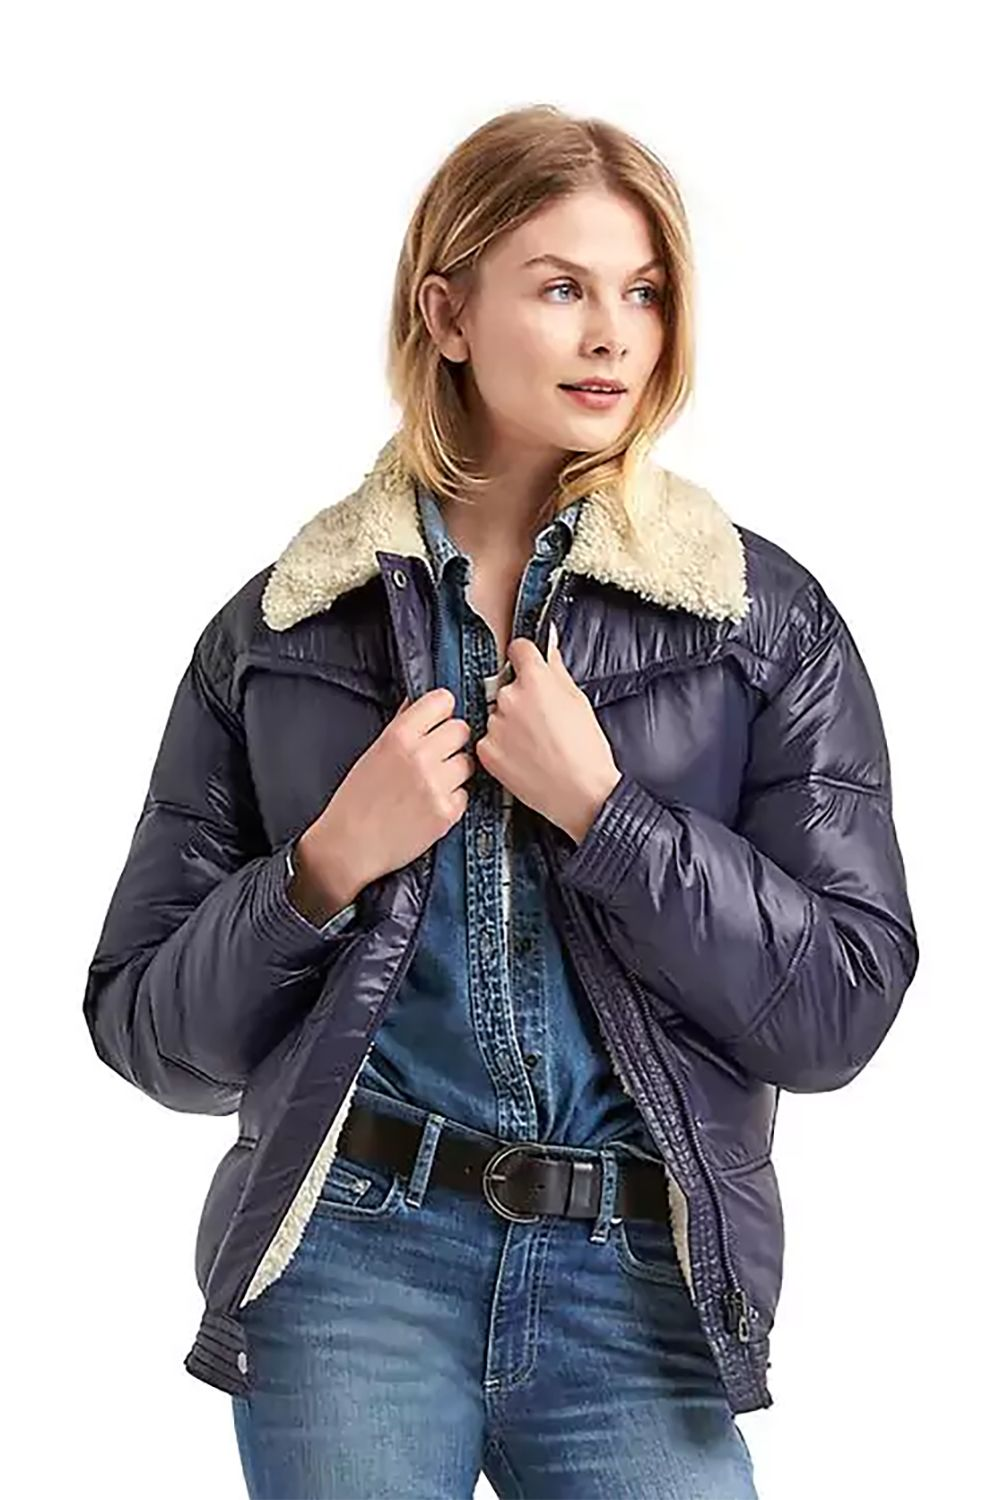 """<p>Splice together shearlingwith the *other* outerwear MVP of the season (the puffer), and you get this mutant.</p><p>$148, <a href=""""http://www.gap.com/browse/product.do?cid=5739&vid=1&pid=356803002"""" target=""""_blank"""" data-tracking-id=""""recirc-text-link"""">gap.com</a>.</p>"""